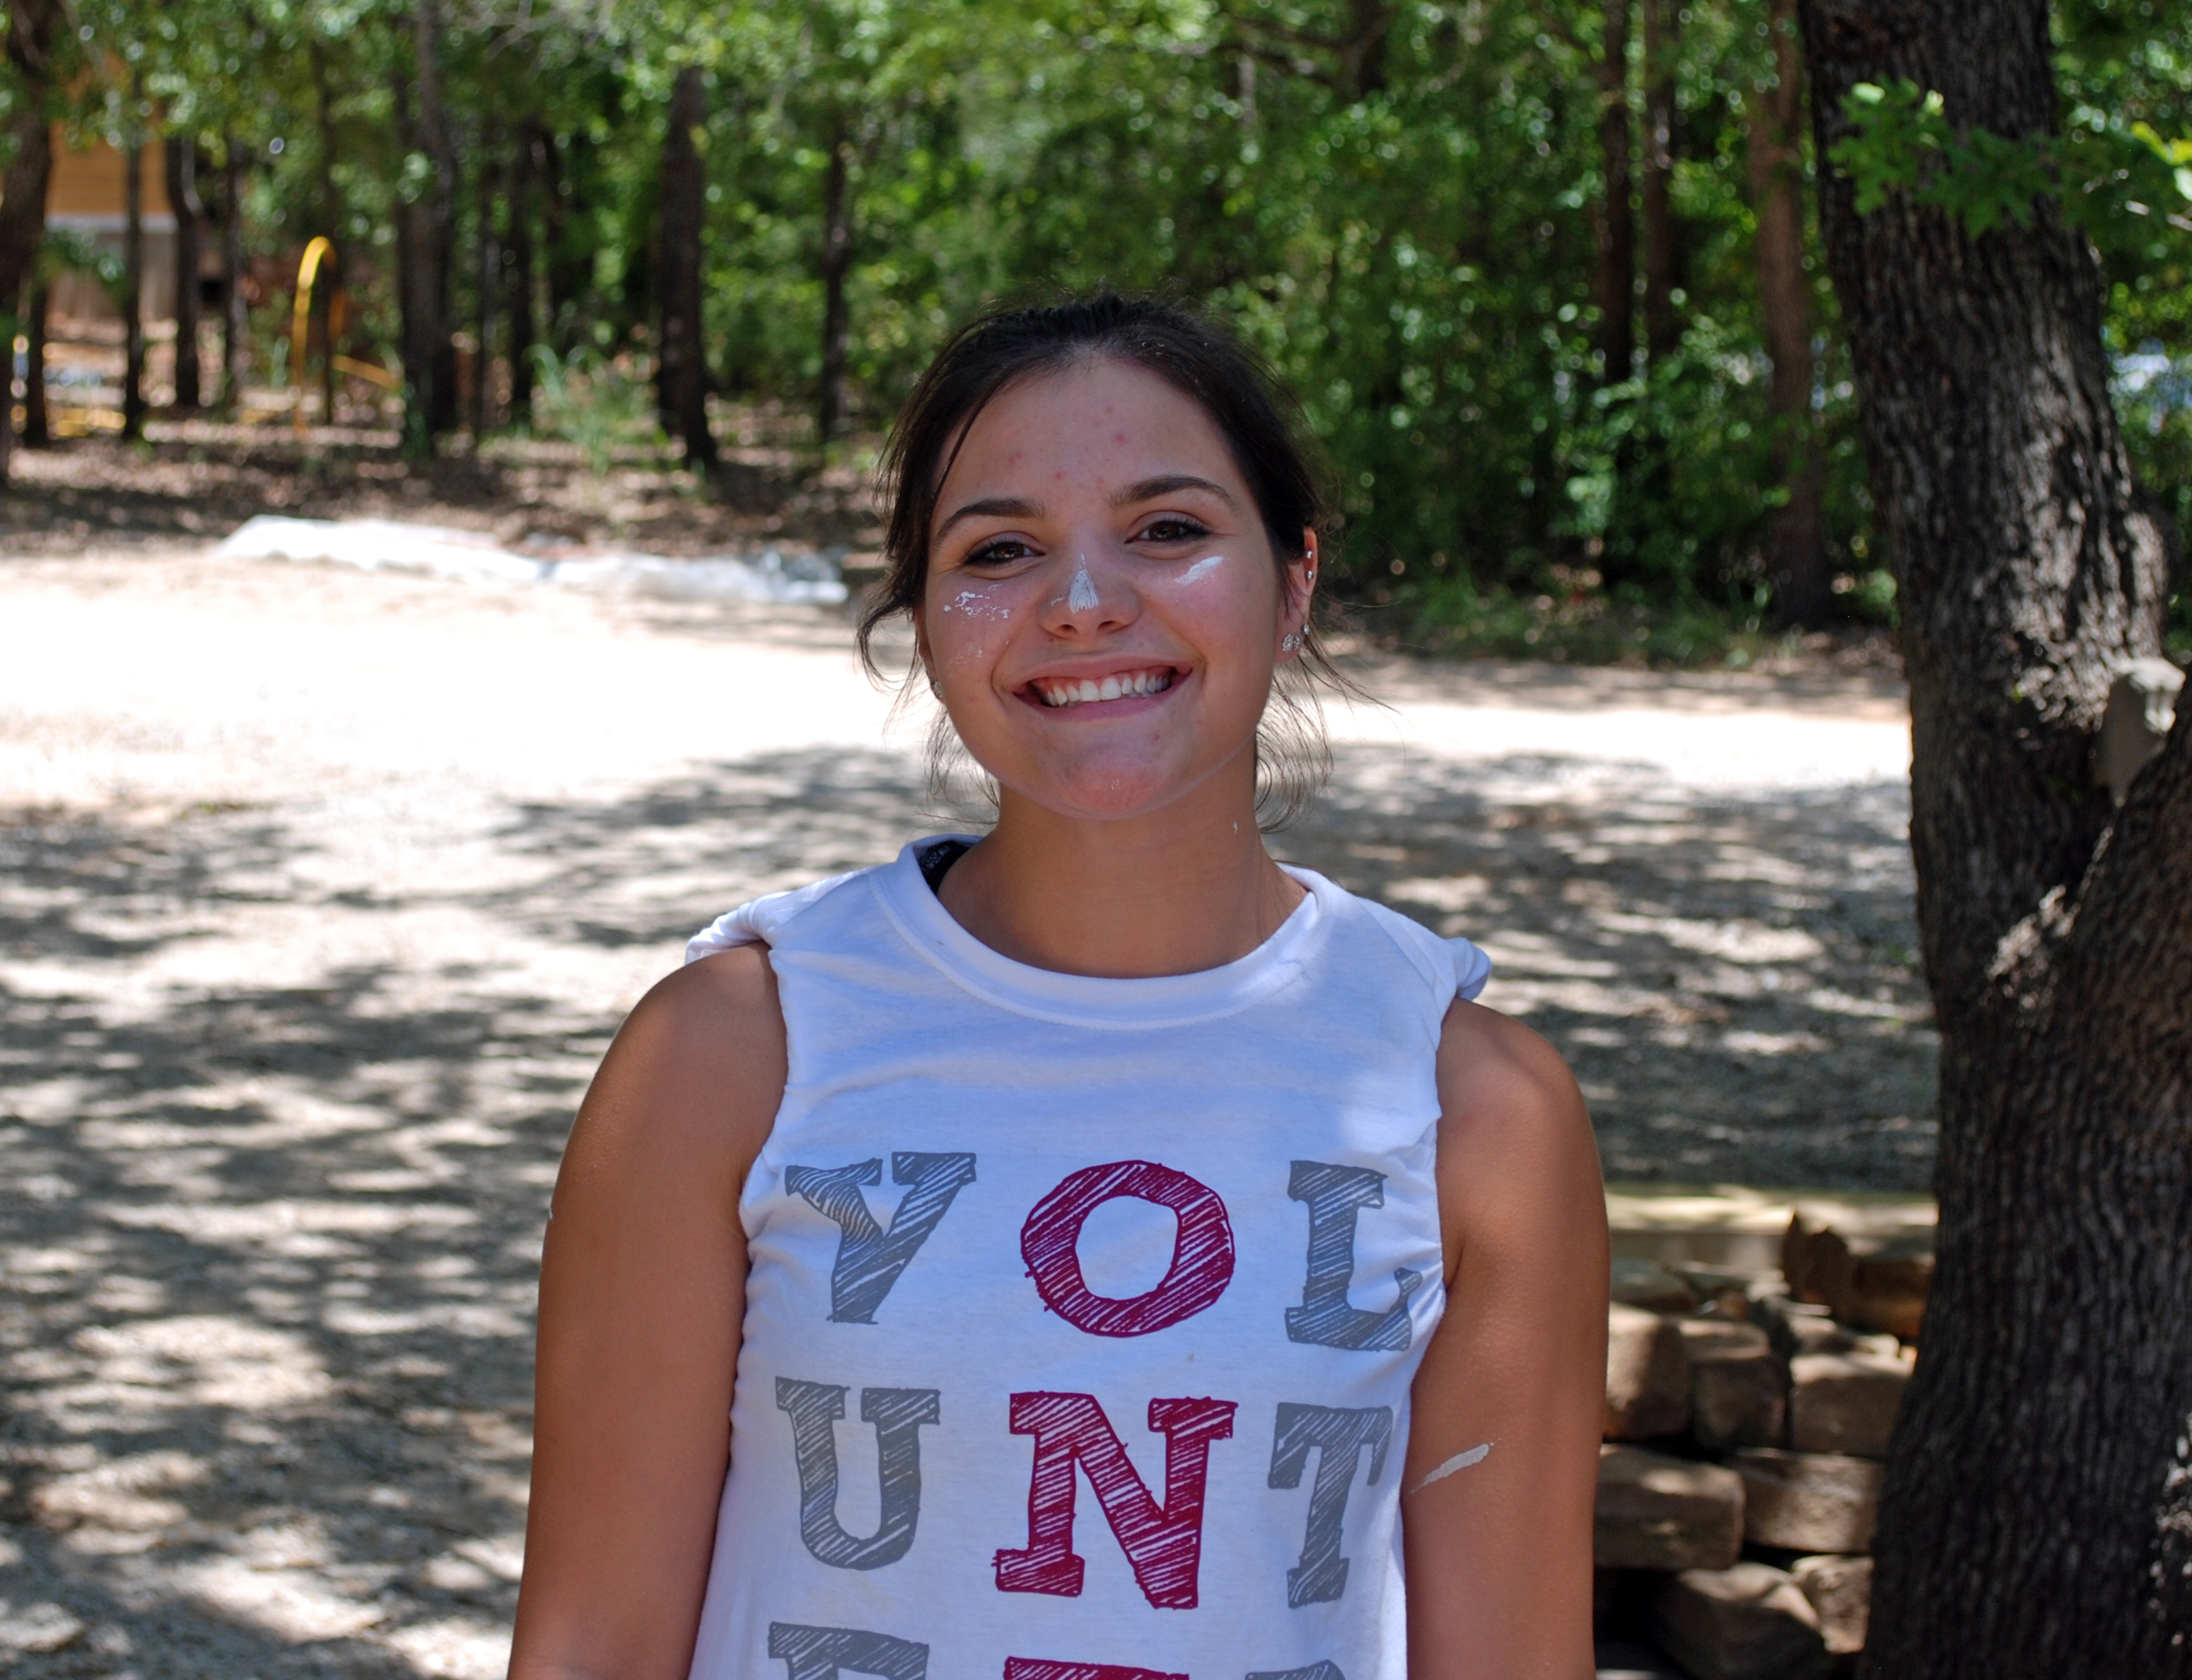 Volunteer at Camp Summit